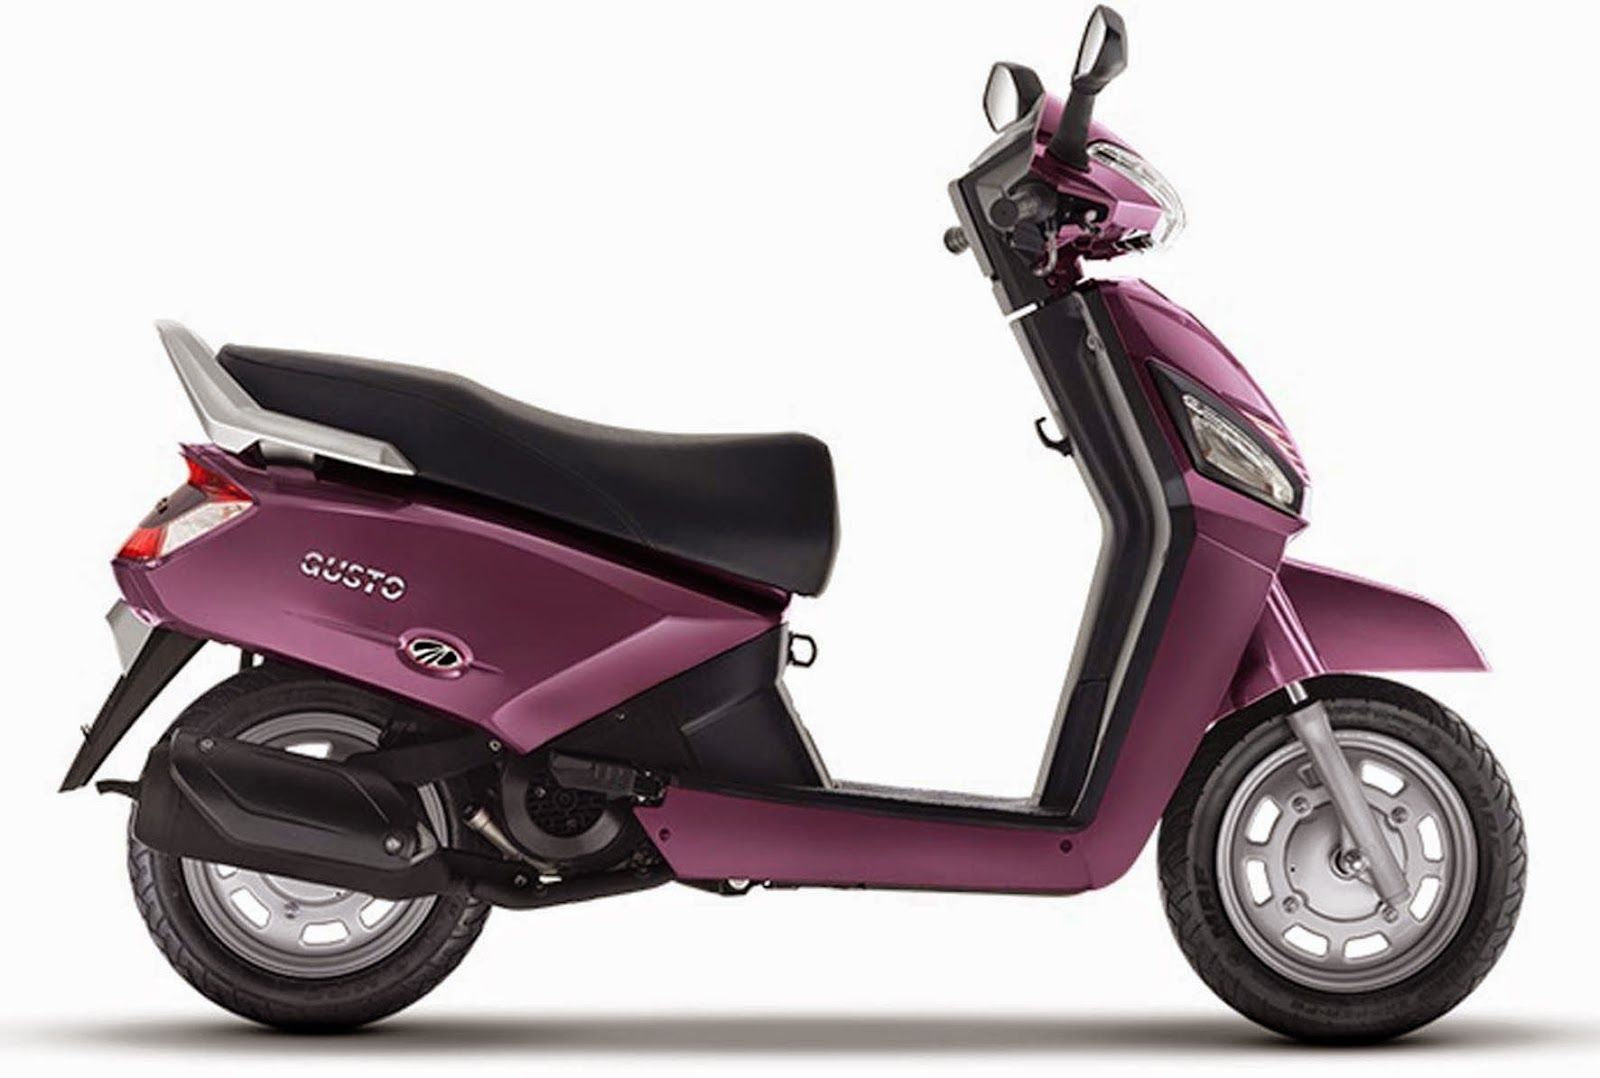 Mahindra is one of the india s leading two wheeler manufacturers it includes motorcycles electric